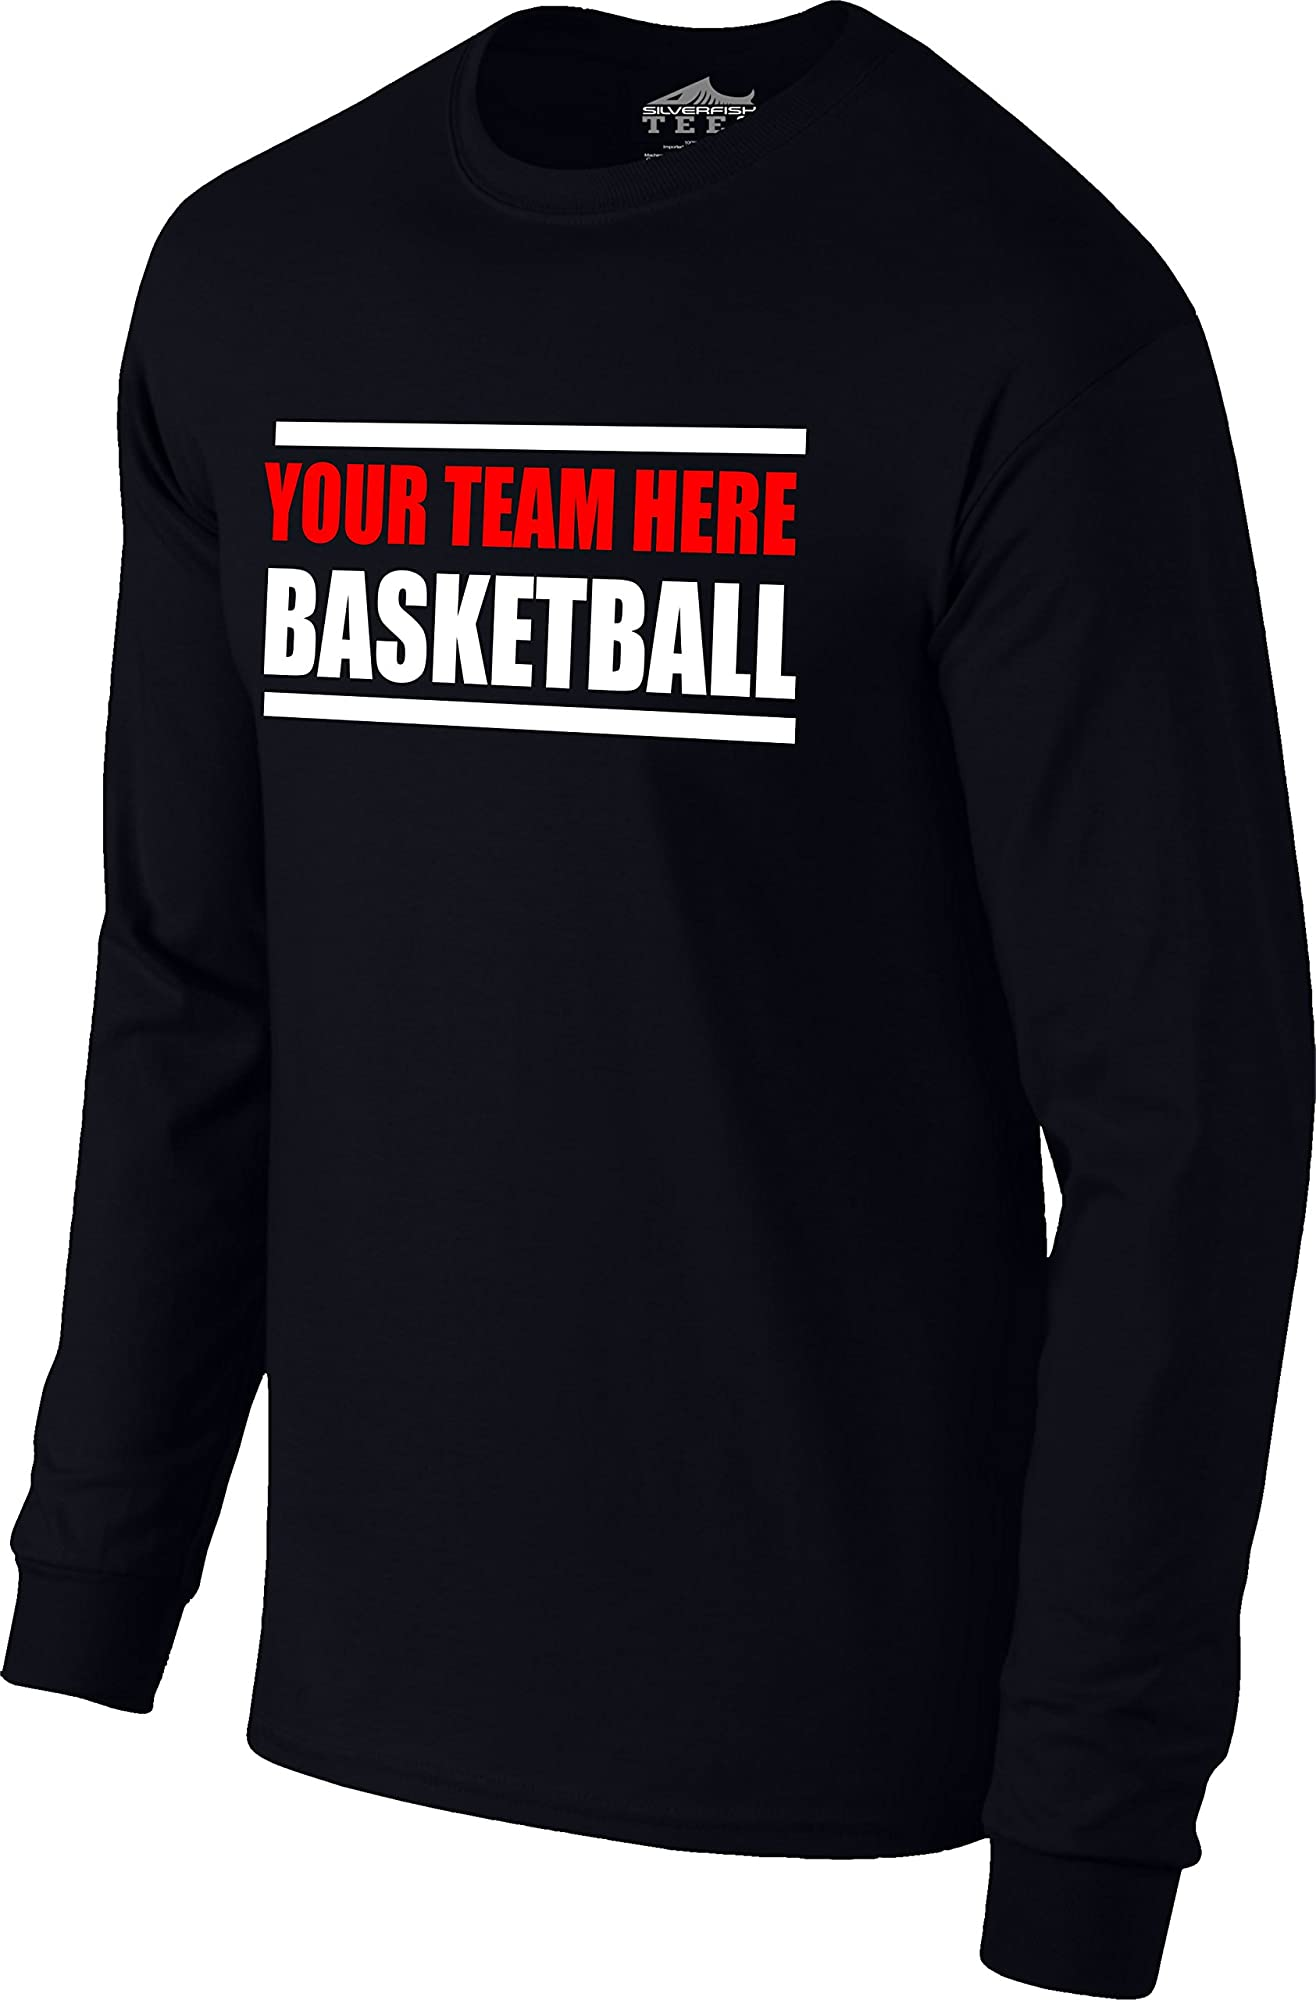 Silverfish Tees Custom Personalized Your Team Here Basketball Warm Up Tee T Shirt